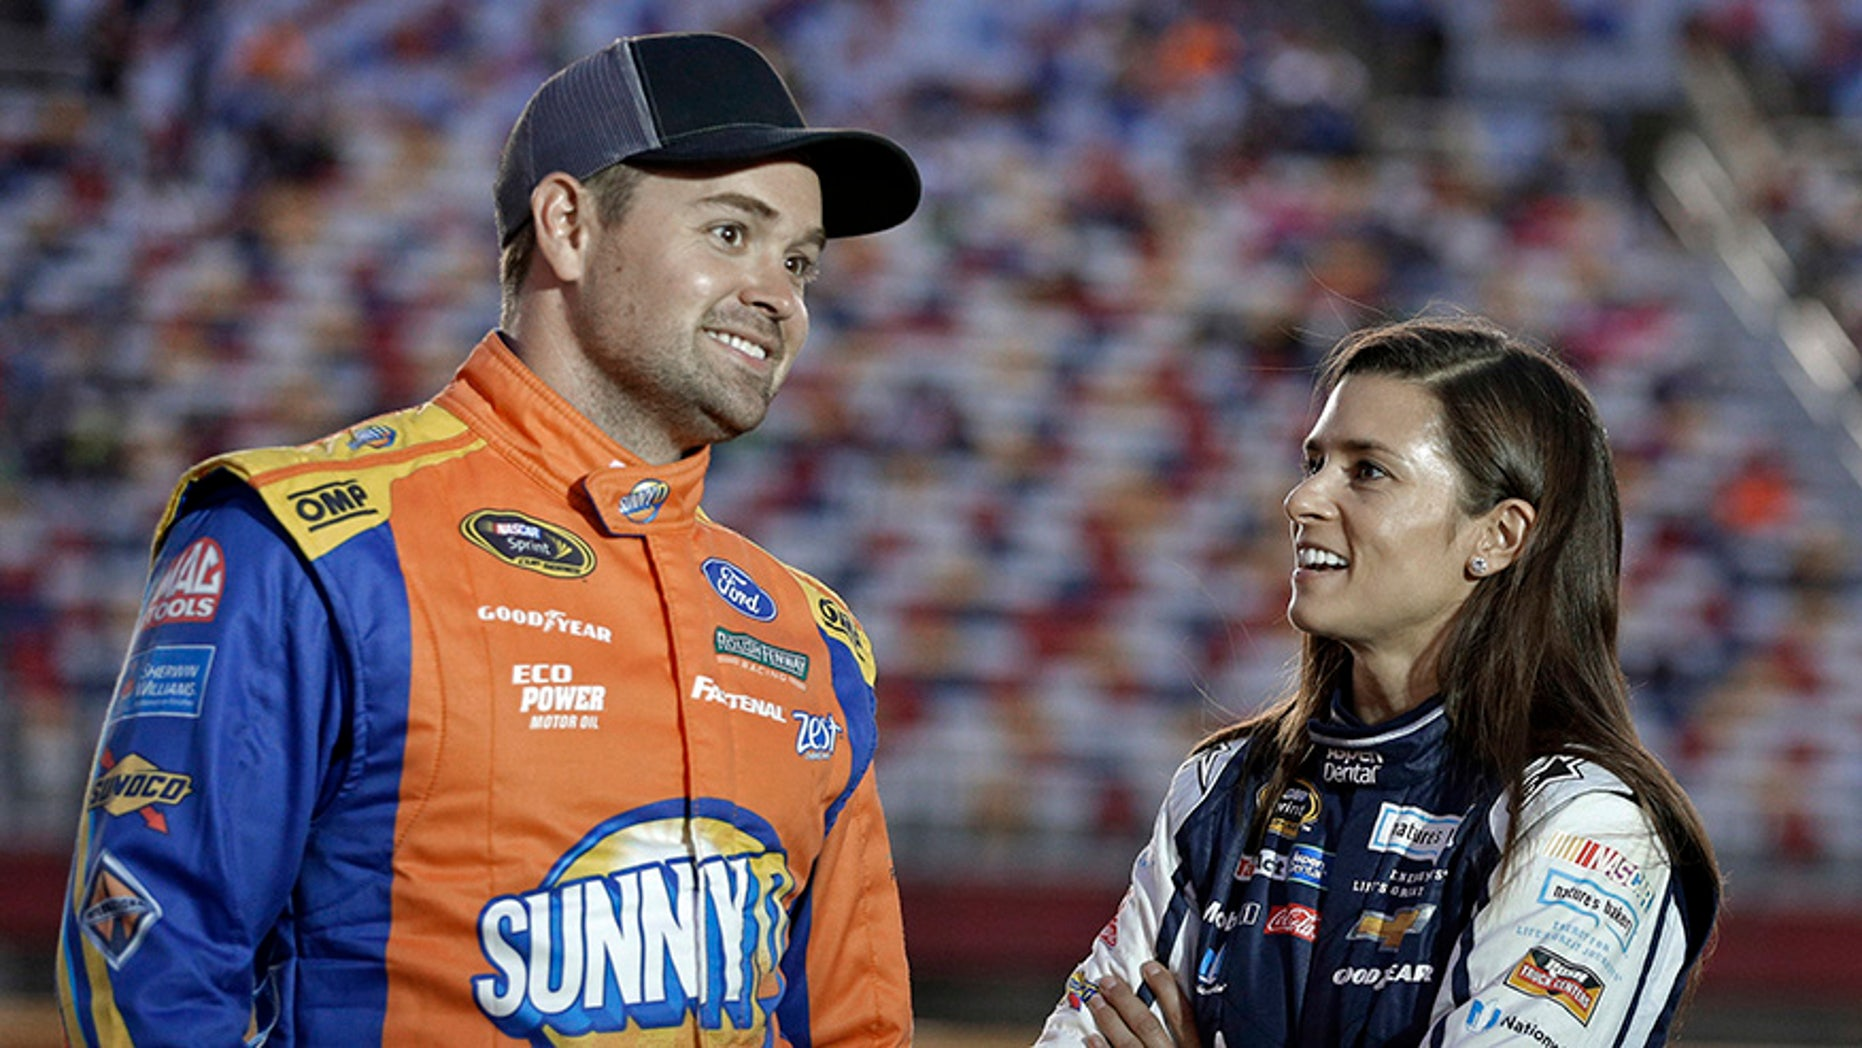 """FILE - In this Oct. 6, 2016, file photo, Danica Patrick, right, talks with Ricky Stenhouse Jr, before qualifying for Saturday's NASCAR Sprint Cup series auto race at Charlotte Motor Speedway in Charlotte, N.C. Danica Patrick and Ricky Stenhouse Jr. have ended their nearly five-year relationship. A spokeswoman for Patrick confirmed to The Associated Press on Monday, Dec. 18, 2017,  that the race car drivers """"are no longer in a relationship."""" (AP Photo/Chuck Burton, File)"""